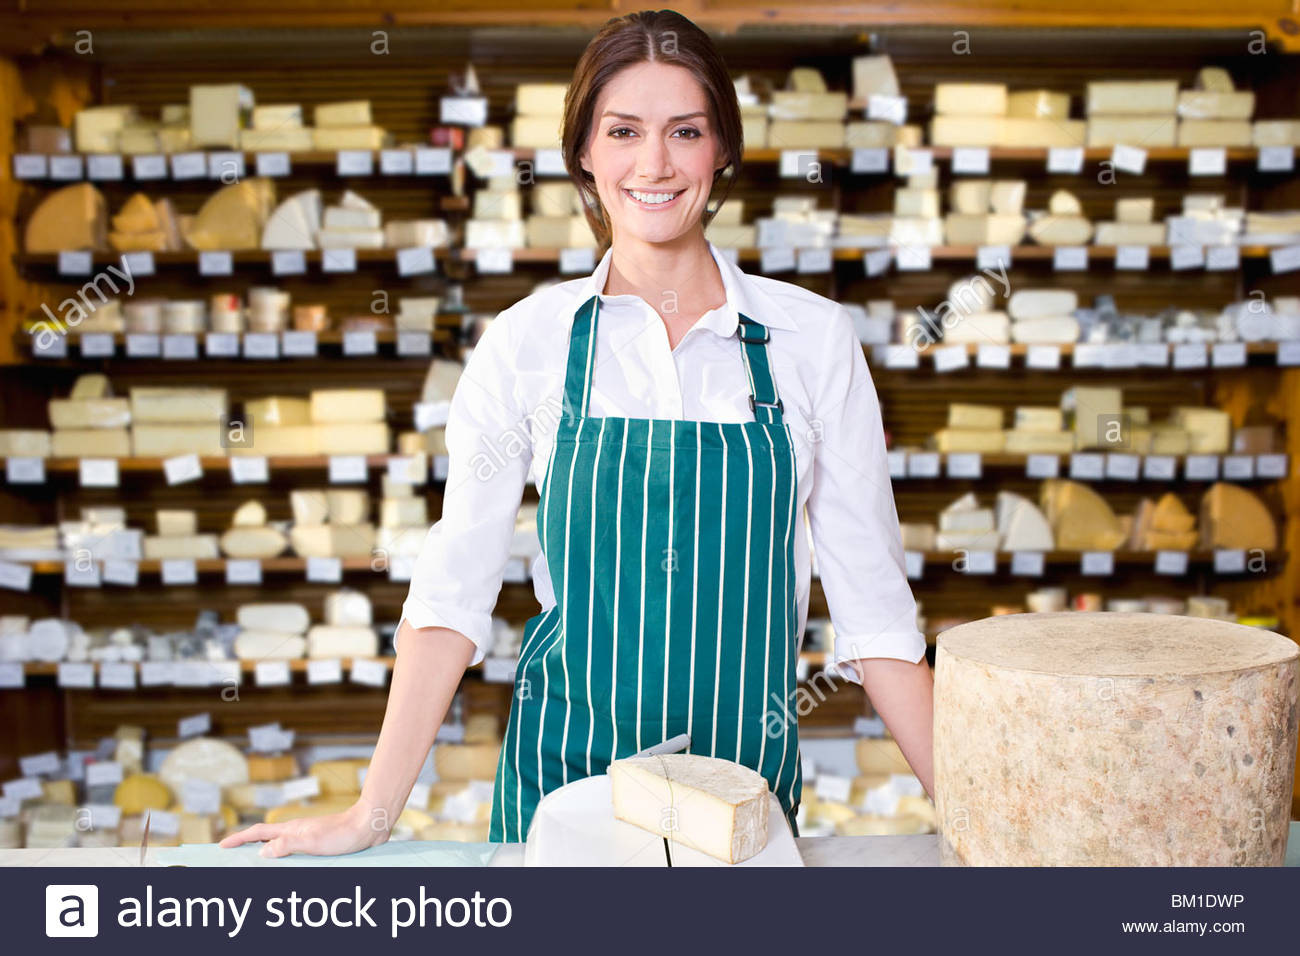 Shop owner standing avec grande variété de fromages Photo Stock